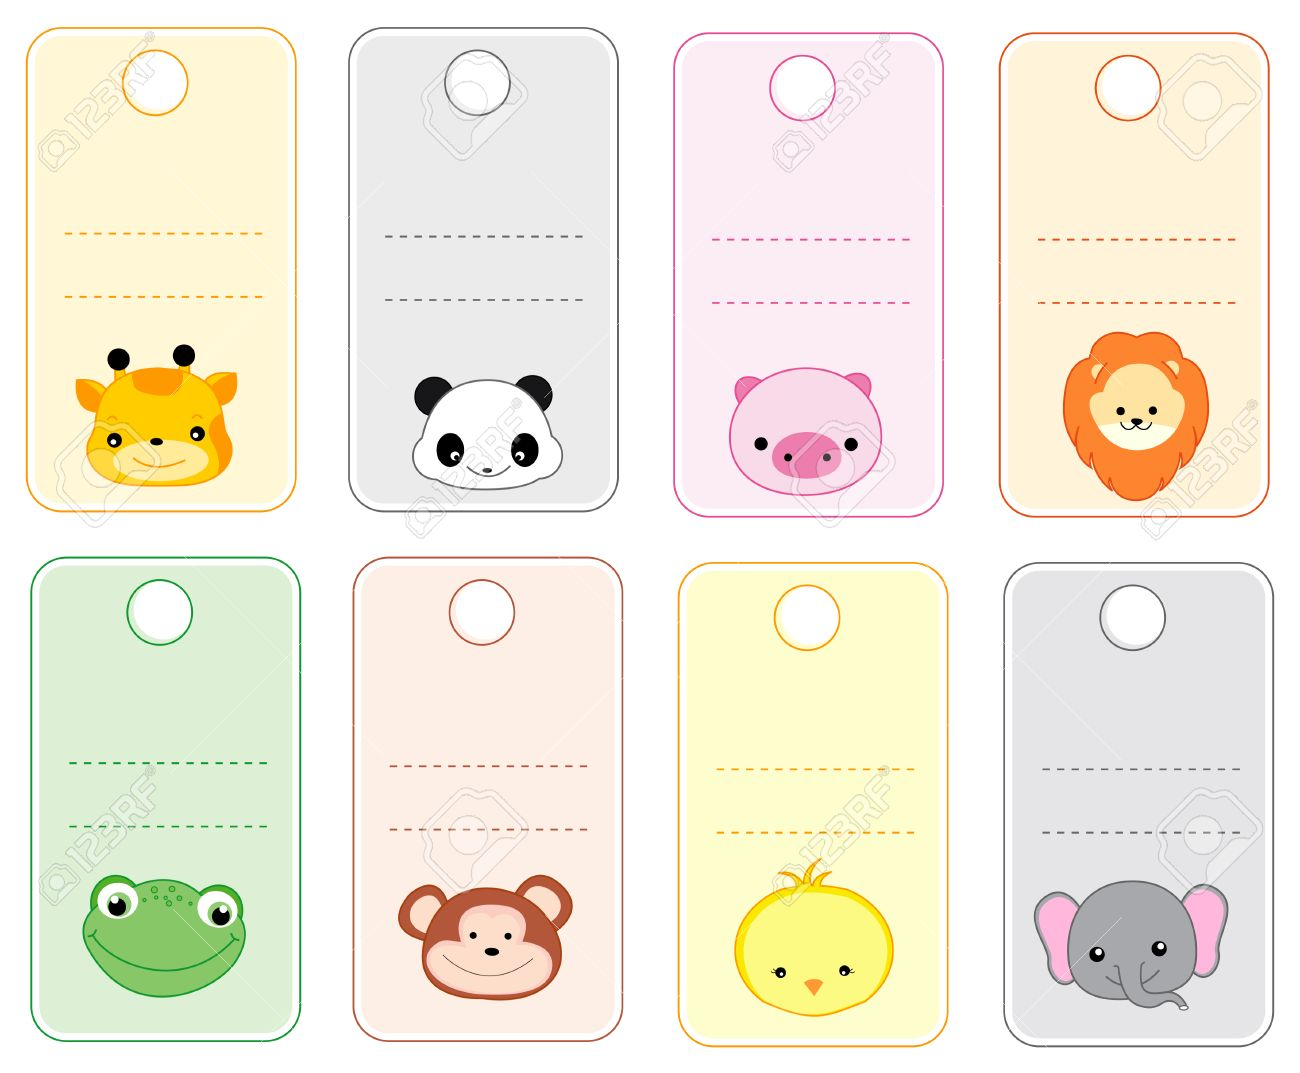 colorful printable gift tags name tags with cute animal faces isolated on white stock vector